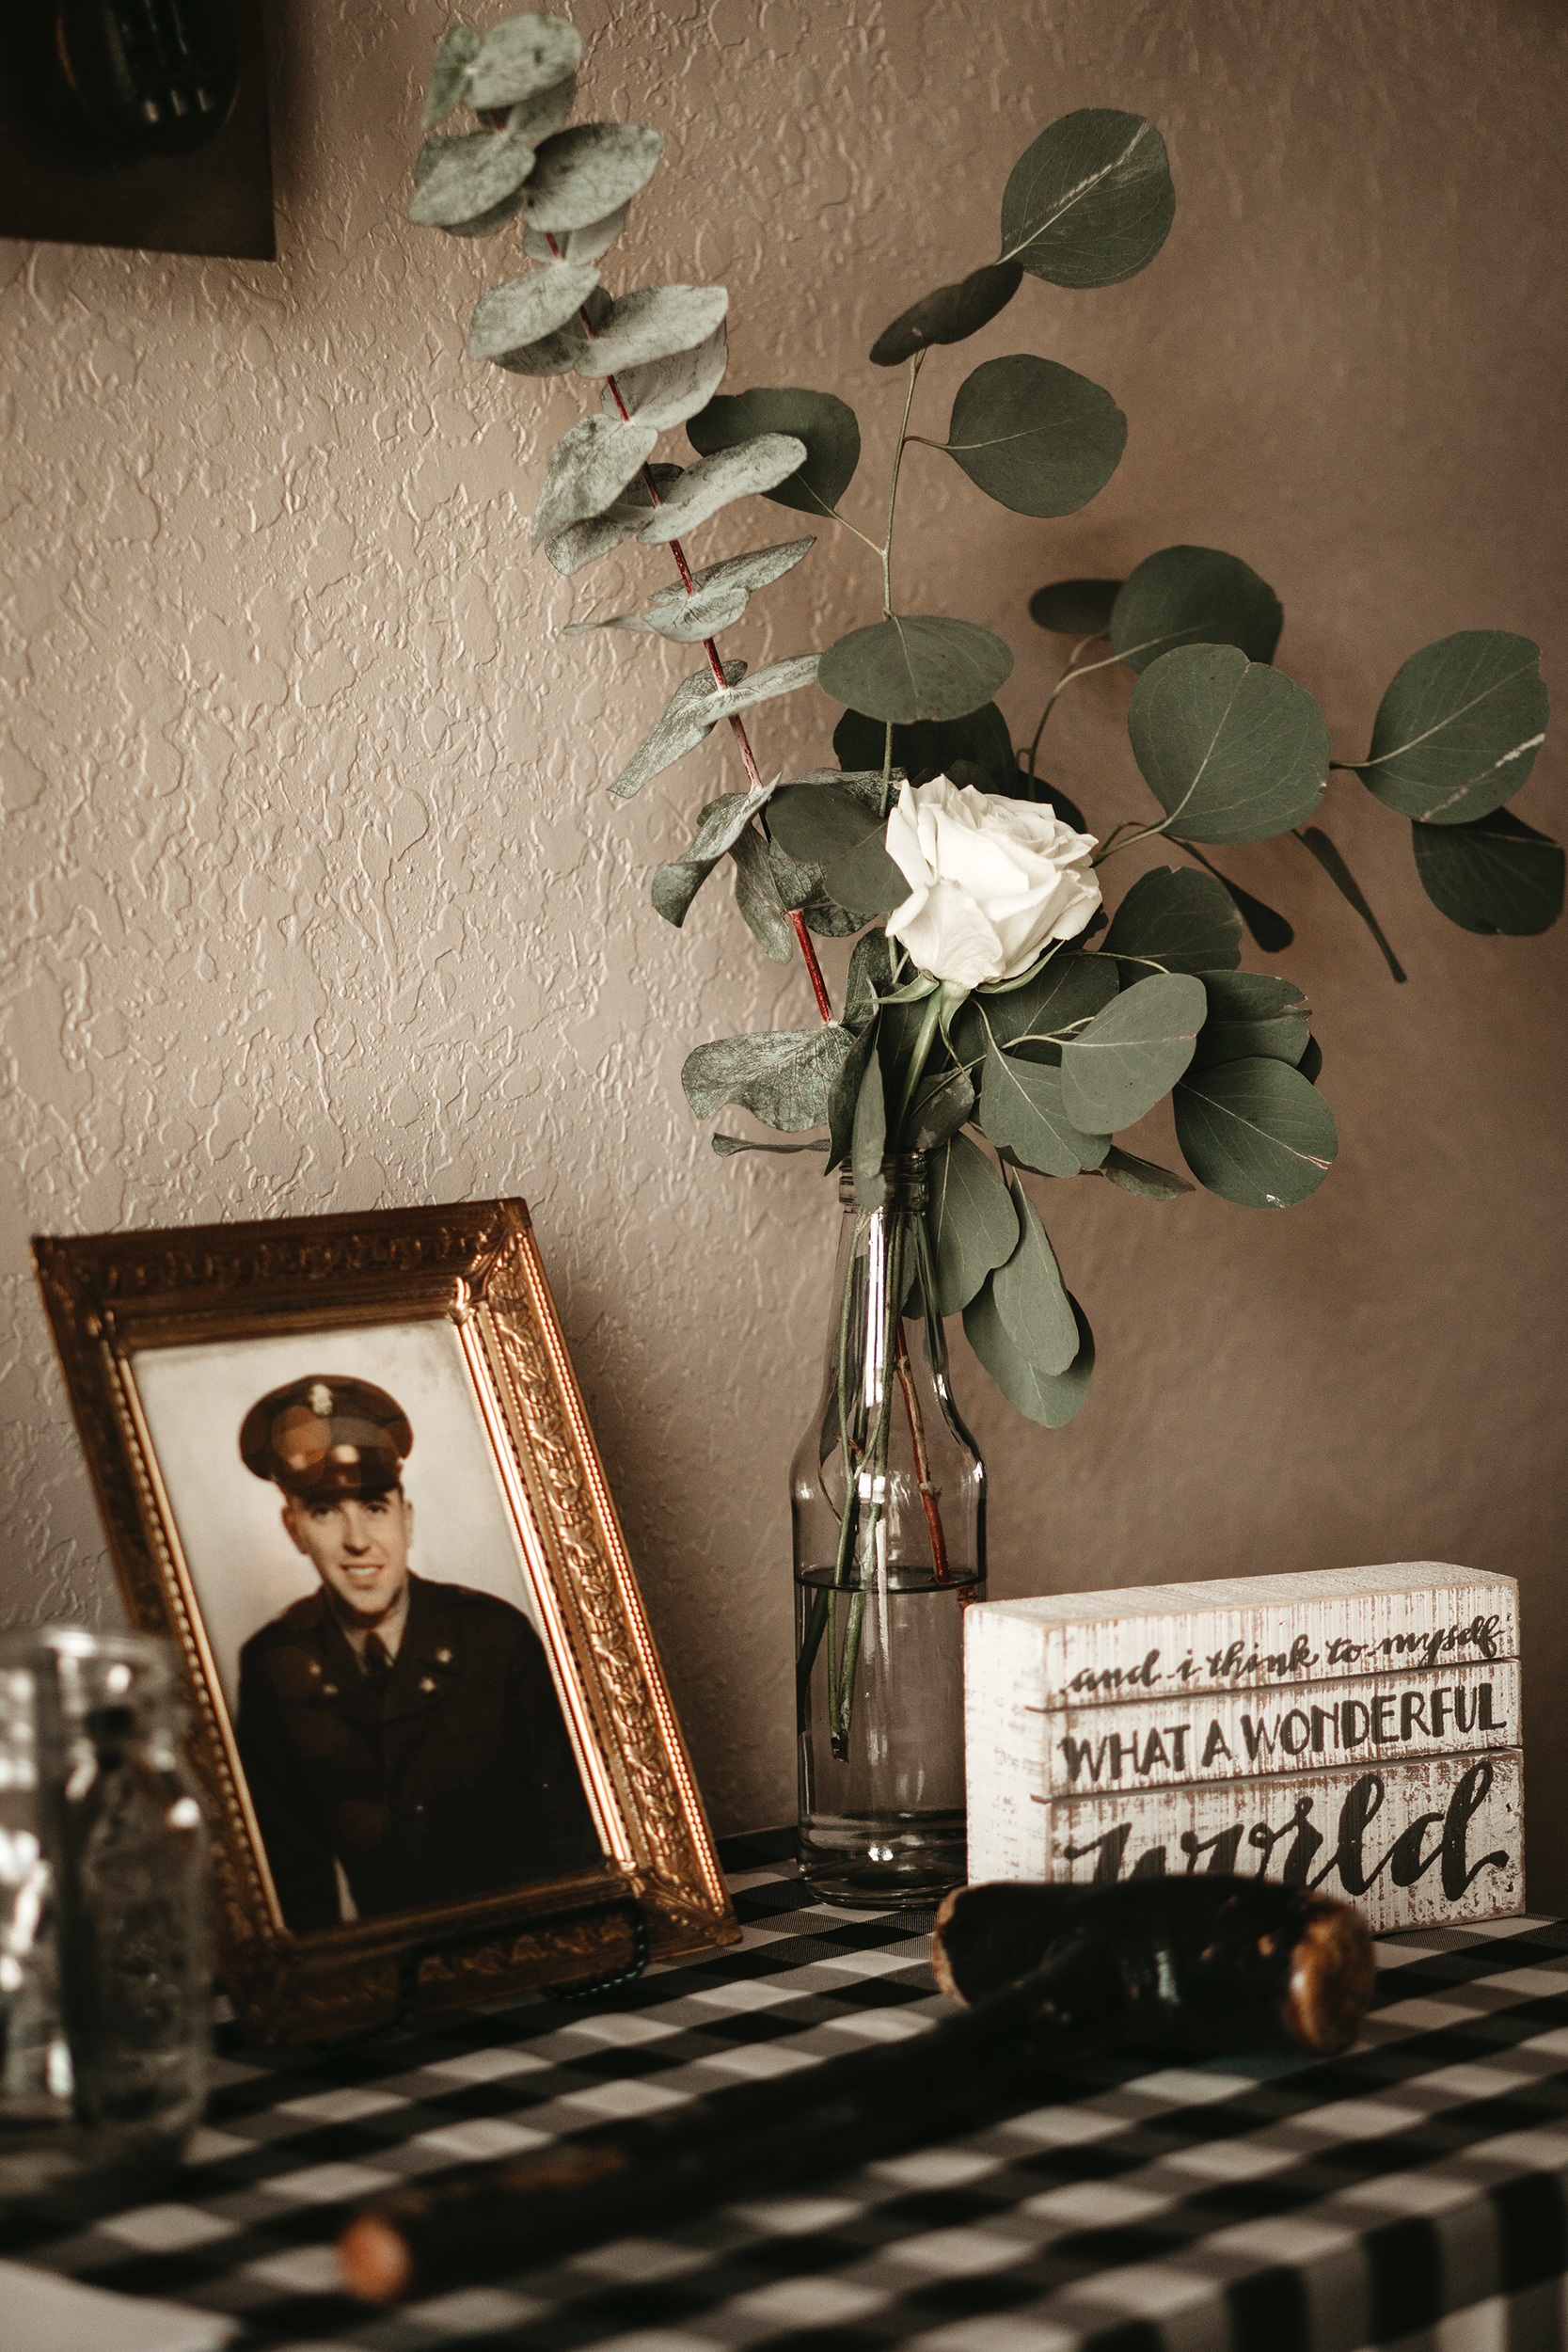 grandfather's 90th birthday framed picture with white rose